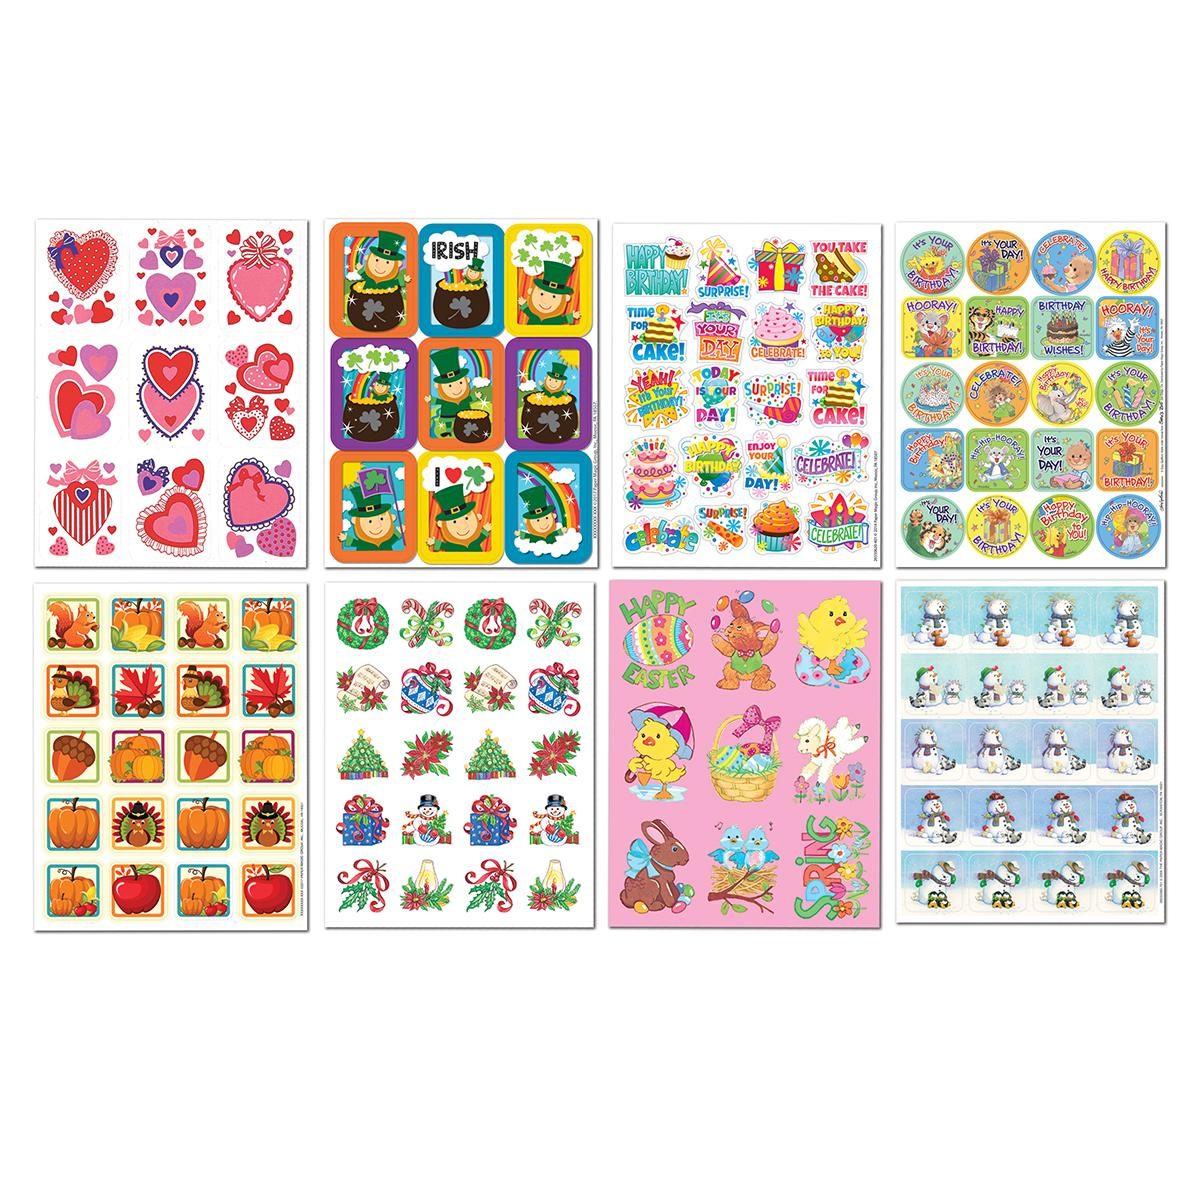 Seasonal/Holiday/Birthday Sticker Assortment